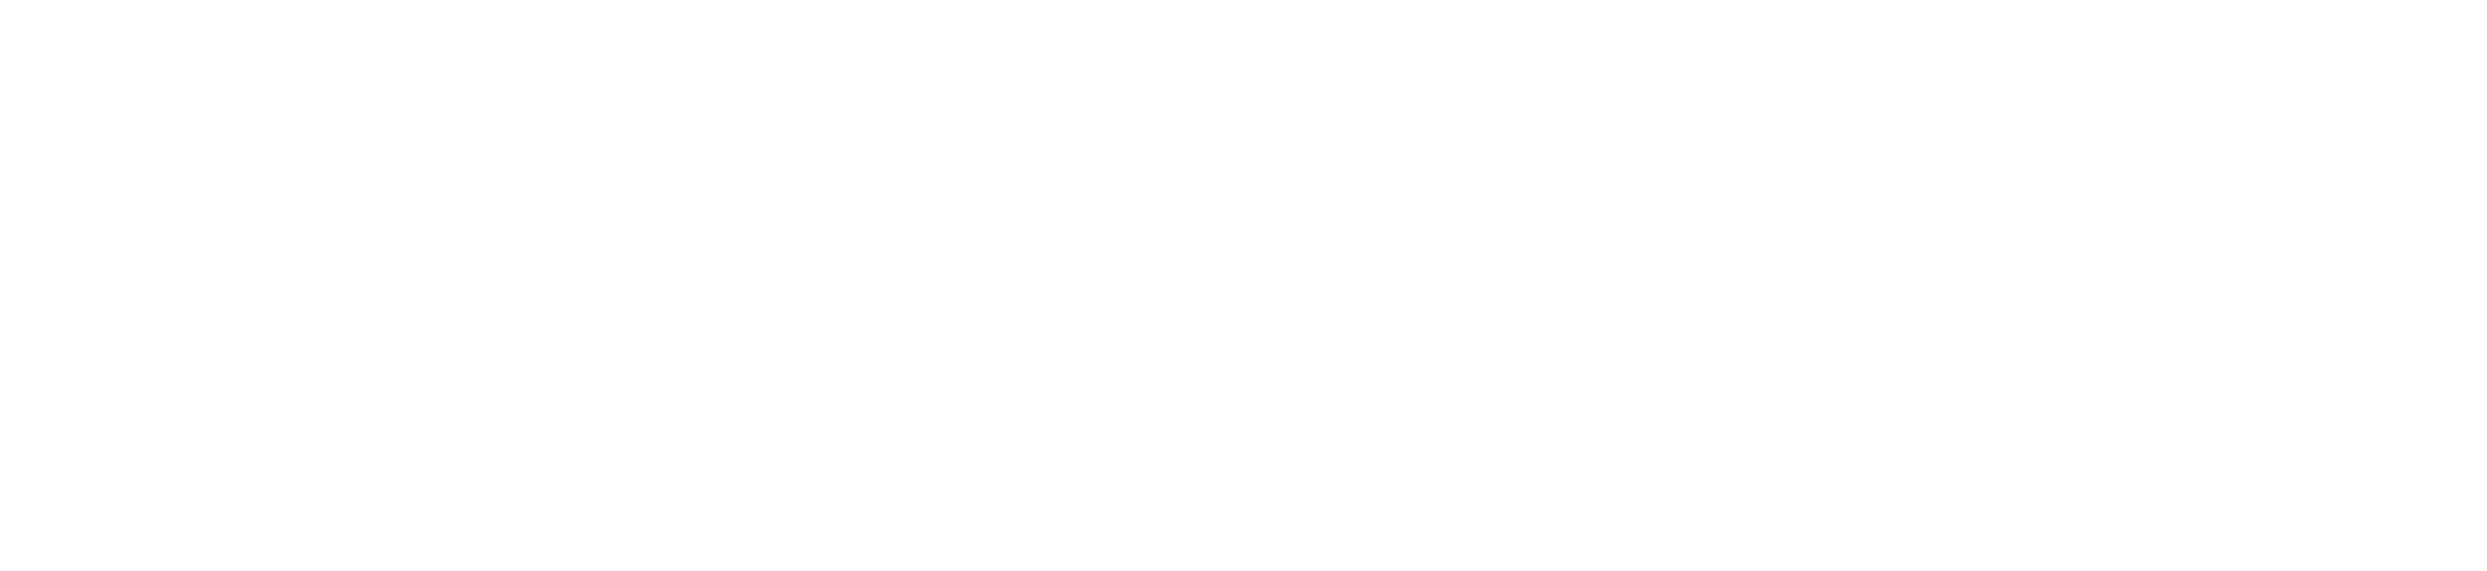 Japan Campingcar Rental Center Group